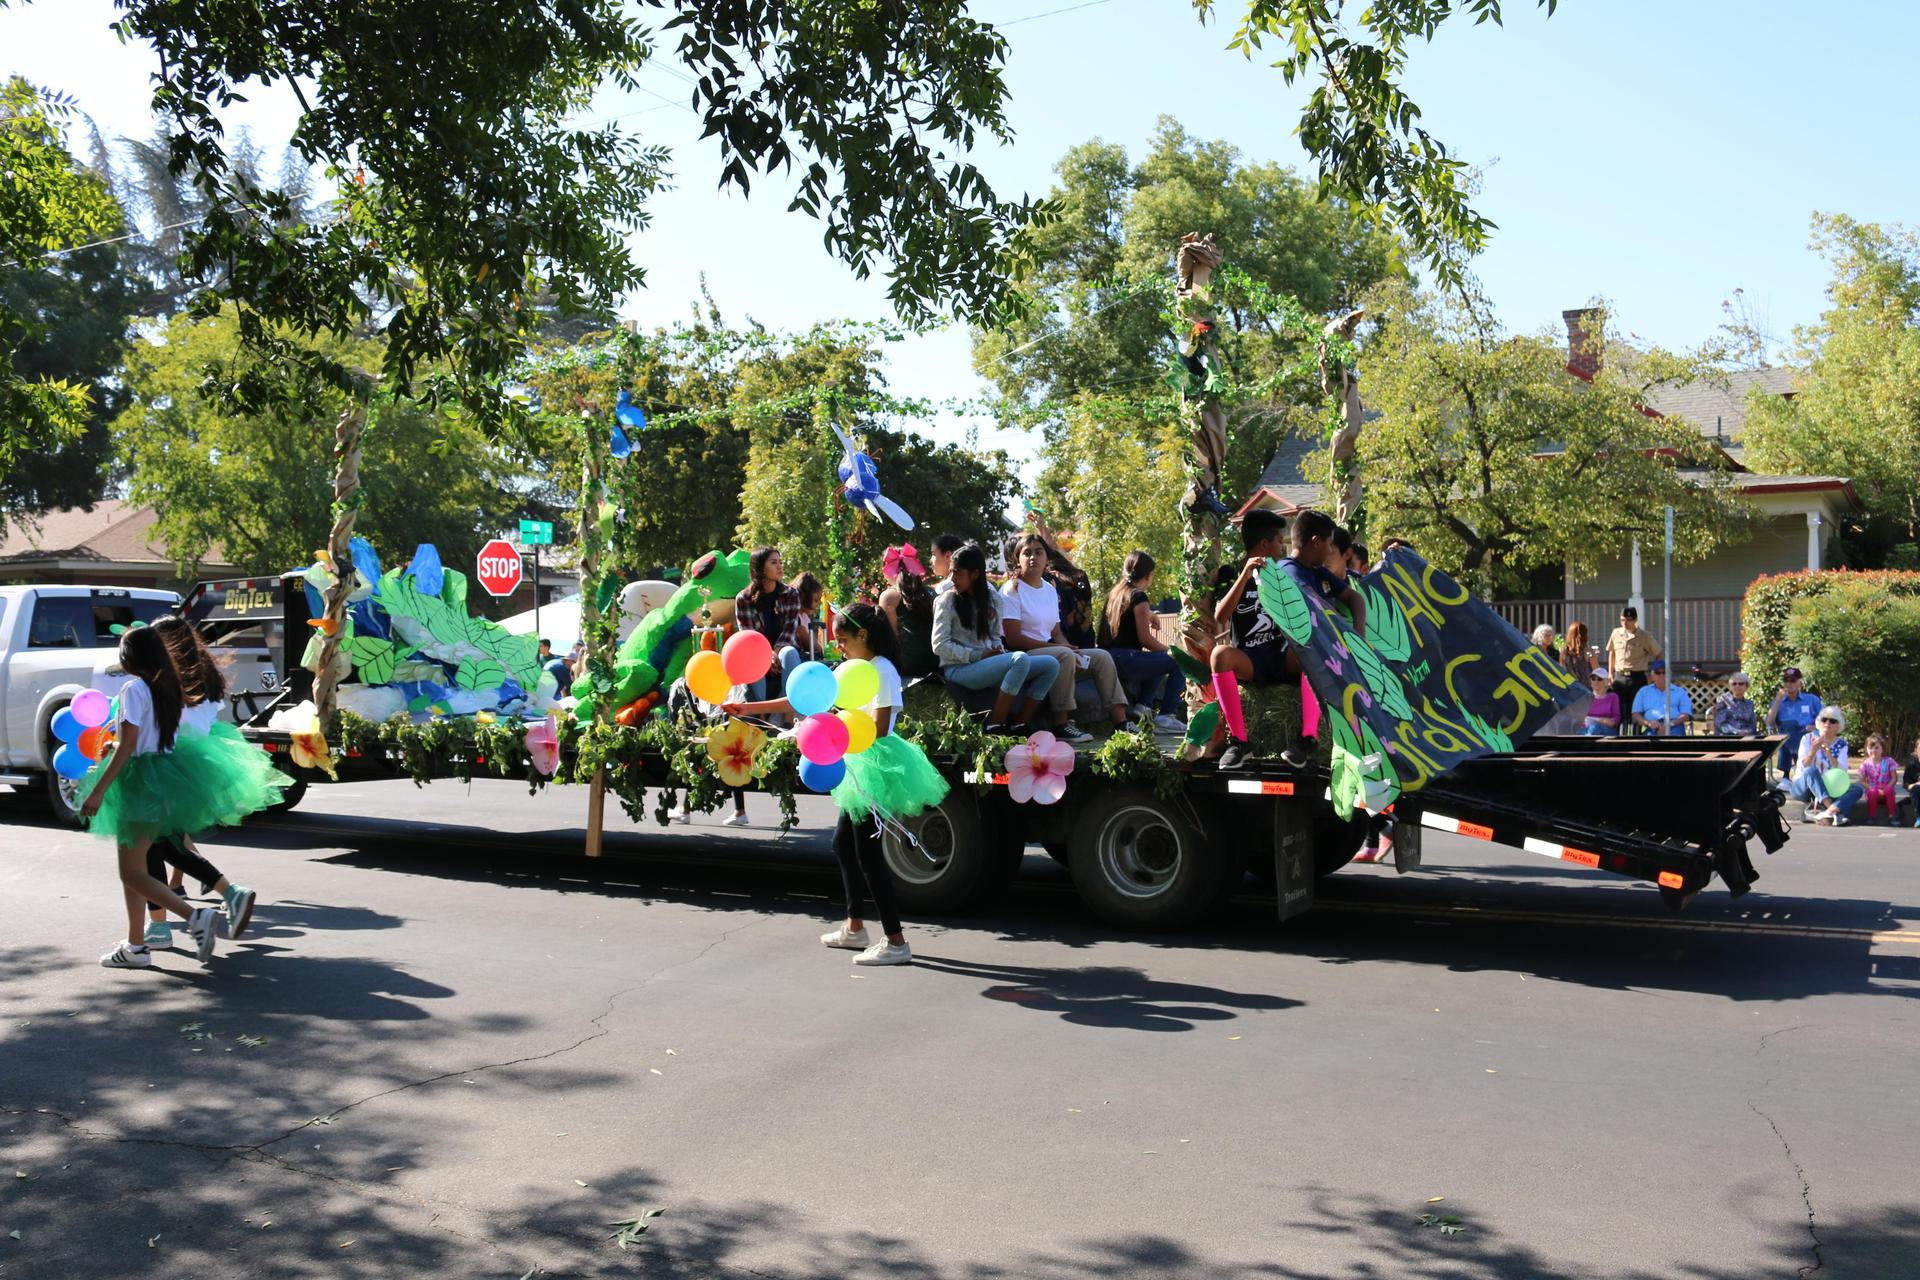 Fiesta Float Parade